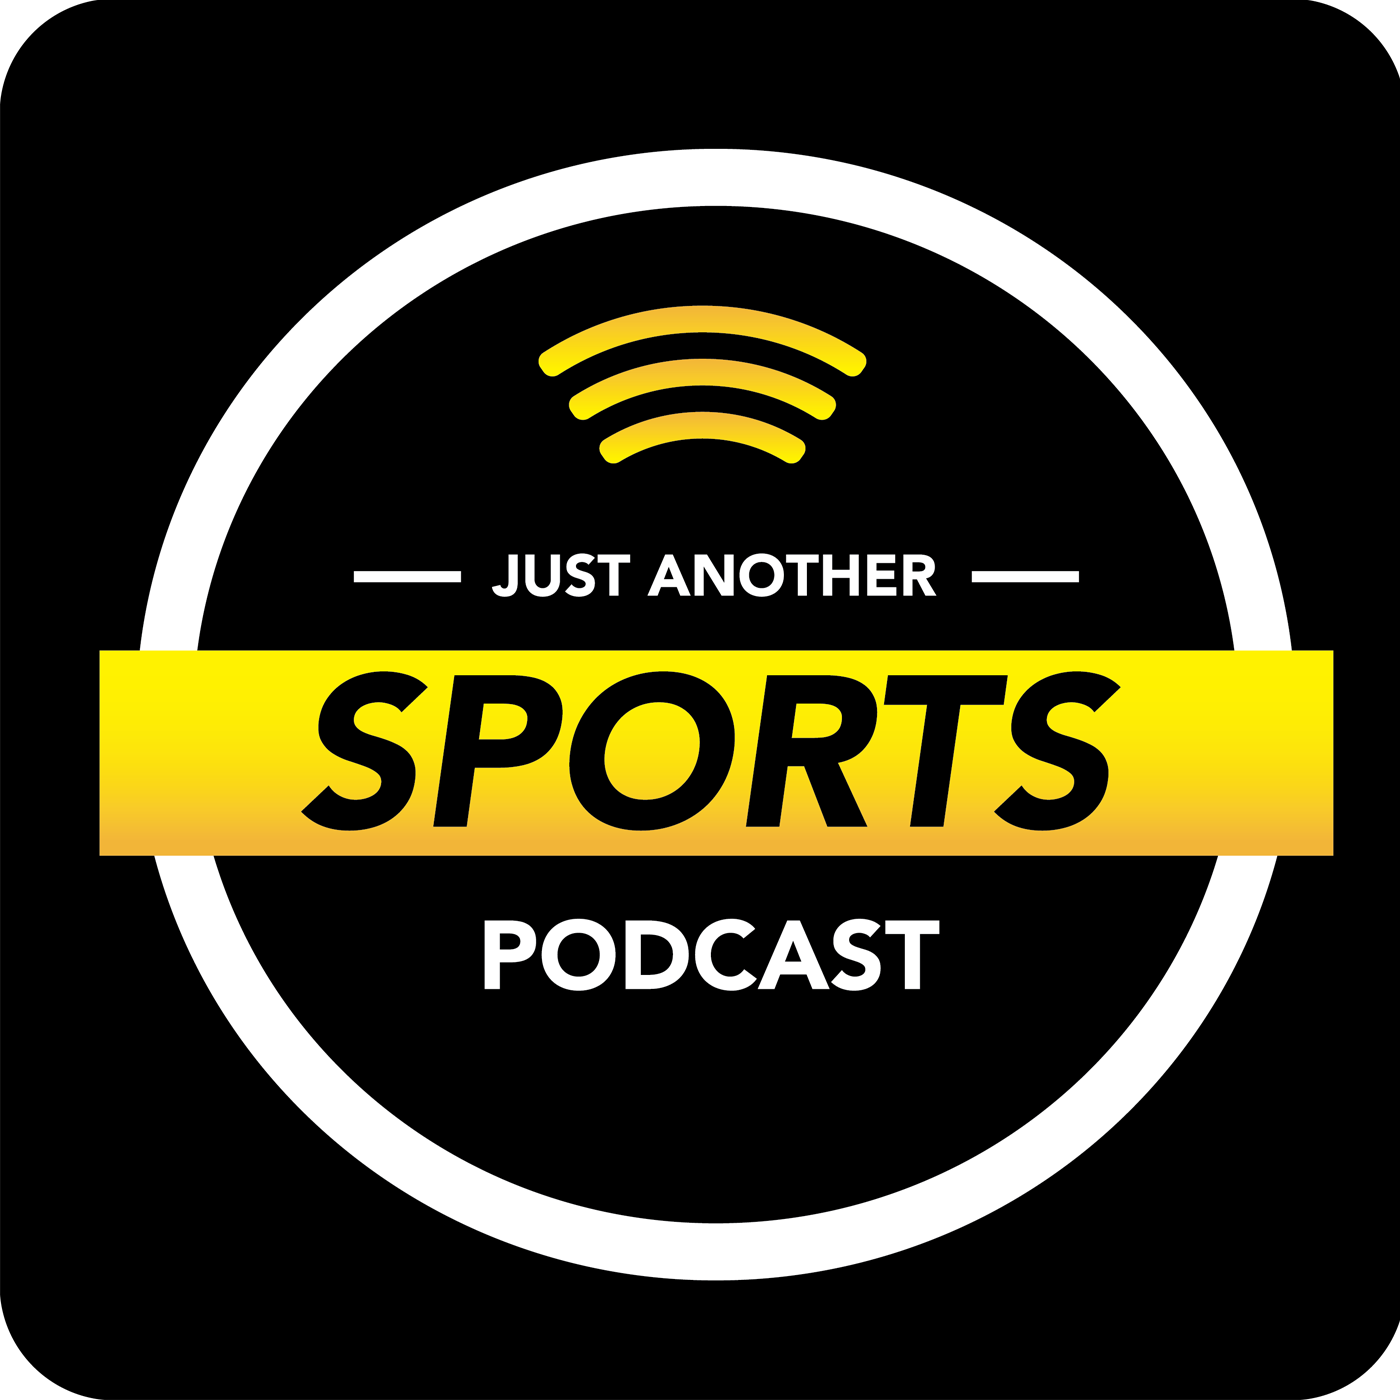 JustAnotherSportsPodcast 1400px.png